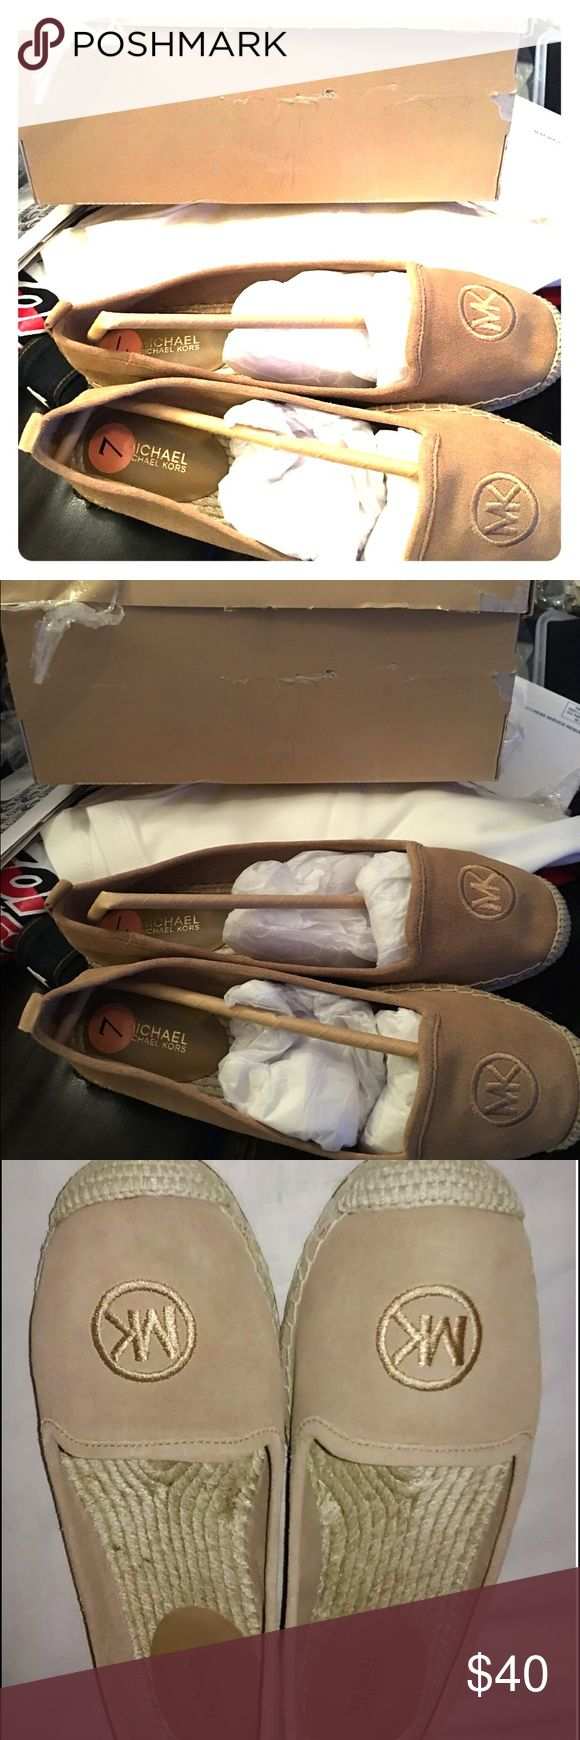 Brand New Beautiful Michael Kors espadrilles. These beauties are beige espadrilles made my Michael Kor's. Size says 7 but they run big. They fit more 7.5-8. New, never worn. KORS Michael Kors Shoes Espadrilles